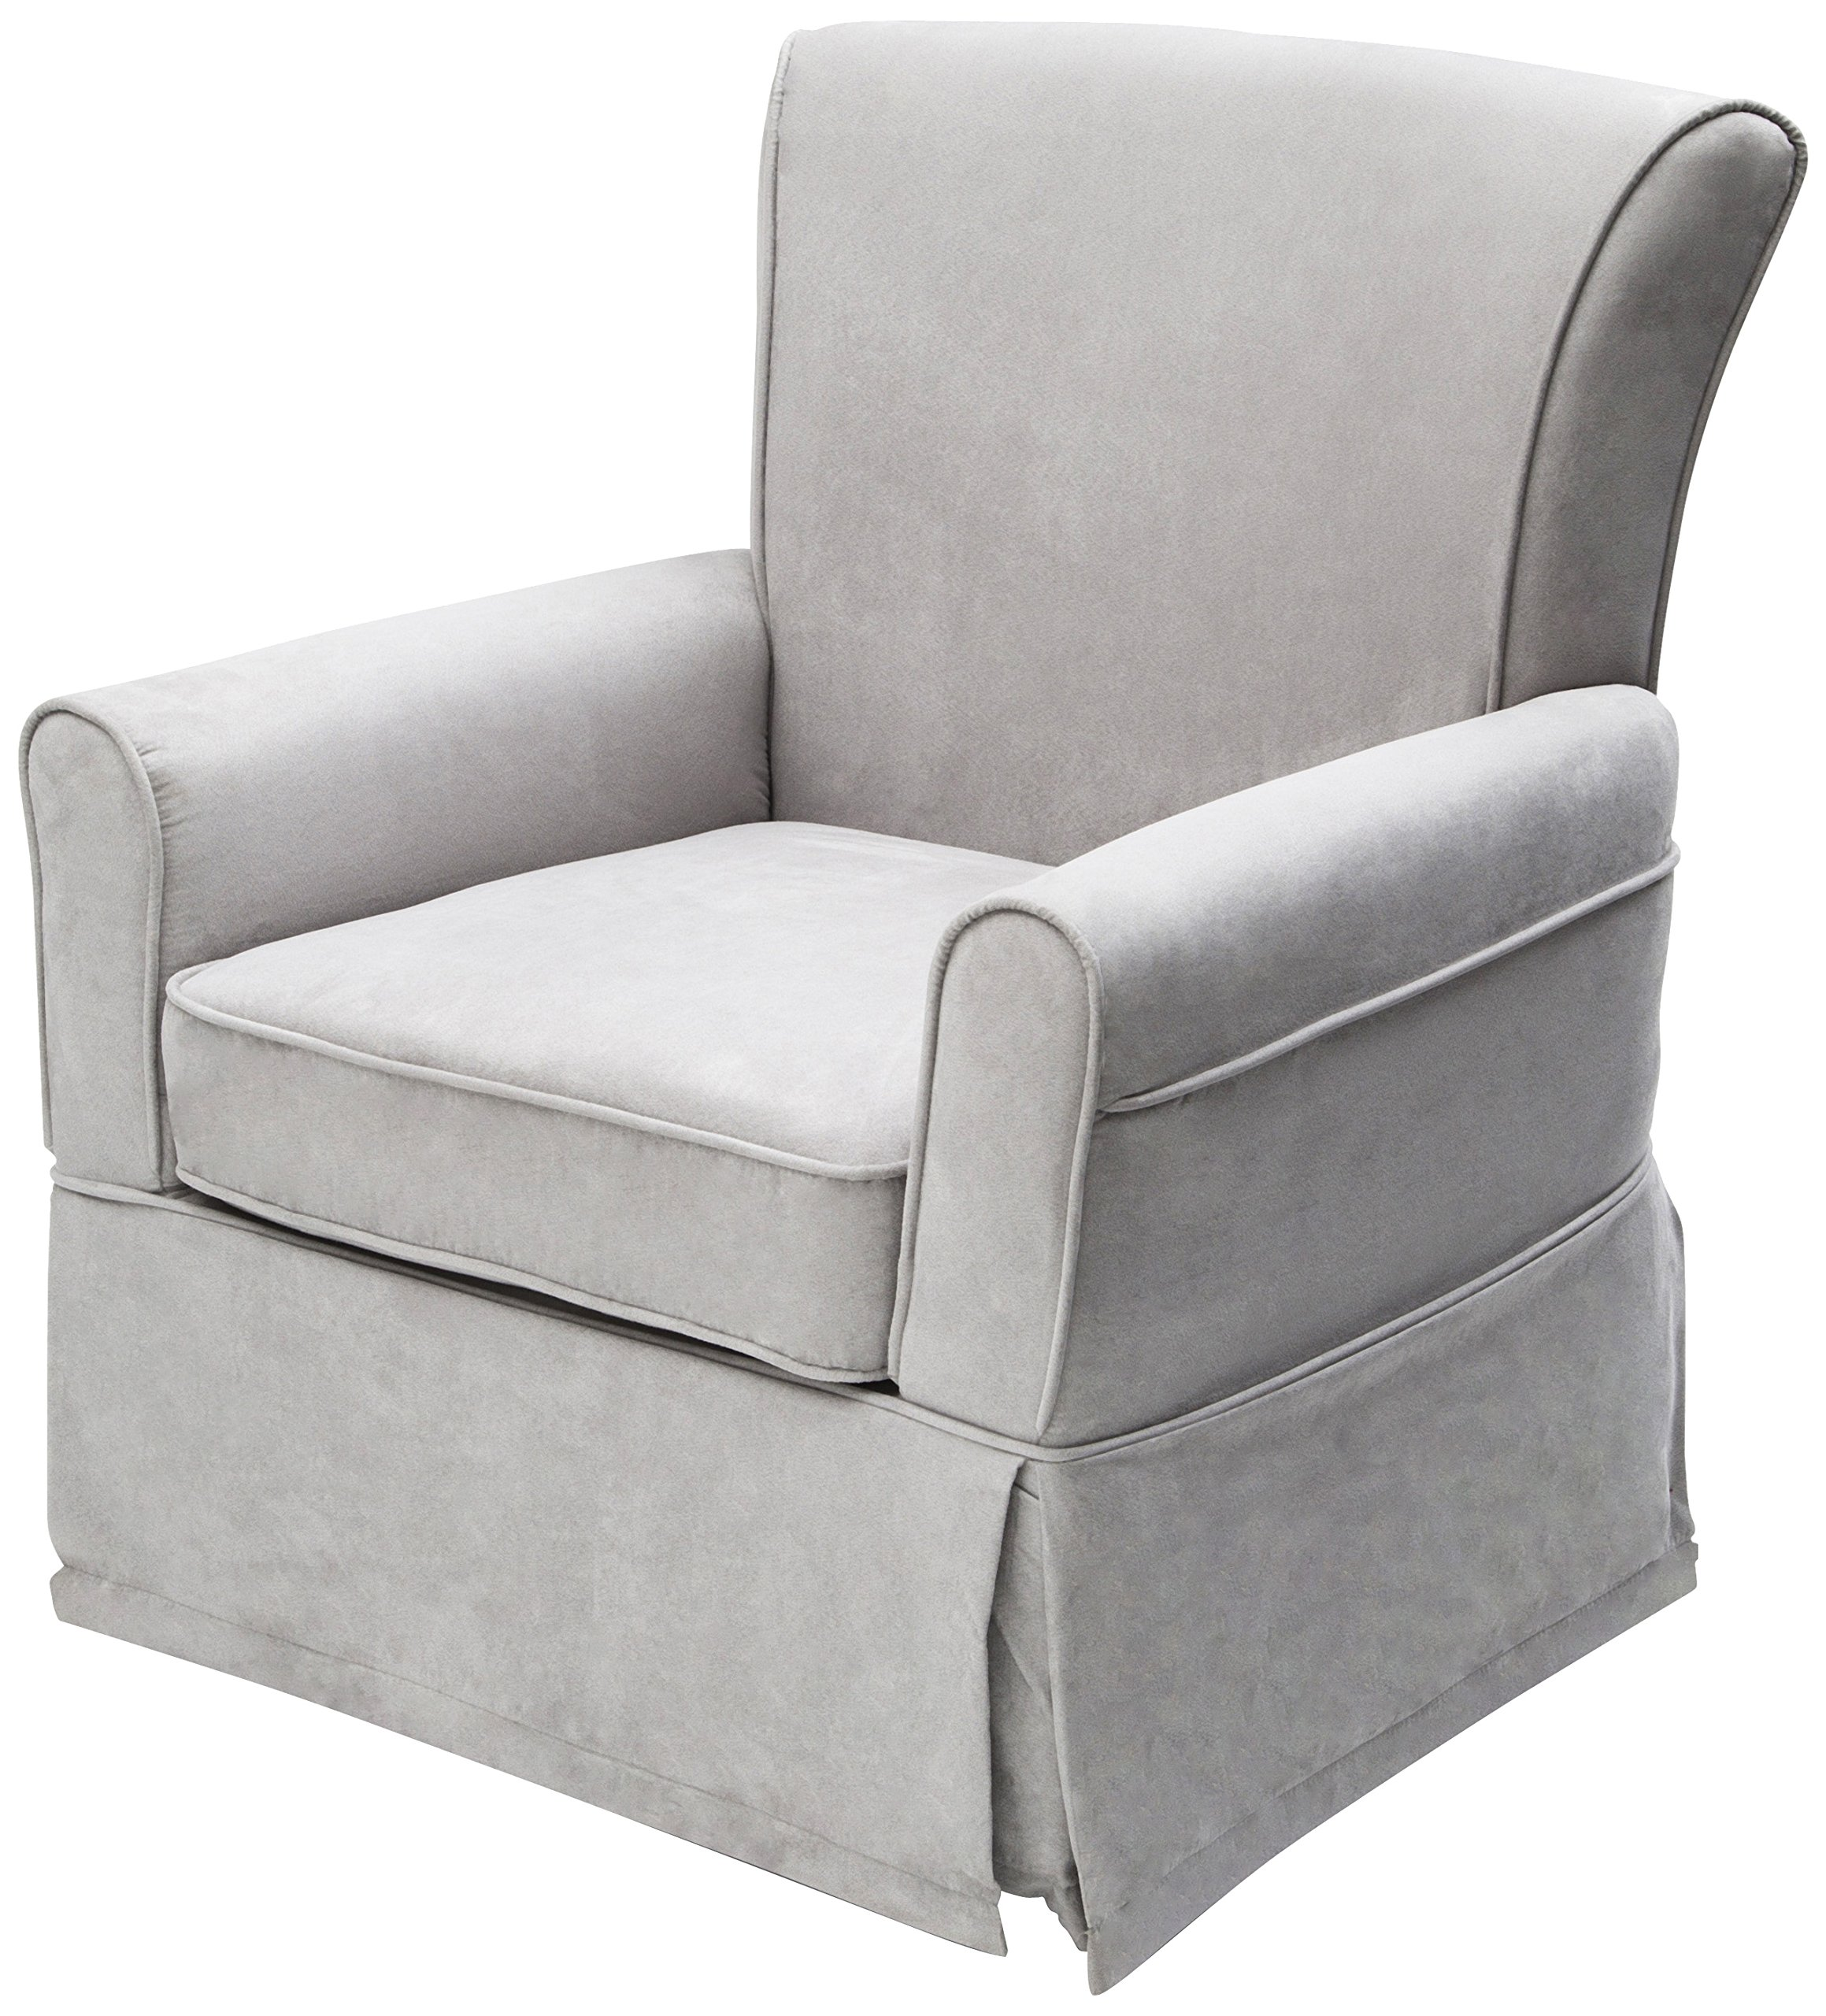 Delta Furniture Benbridge Upholstered Glider Swivel Rocker Chair, Dove Grey by Delta Furniture (Image #1)